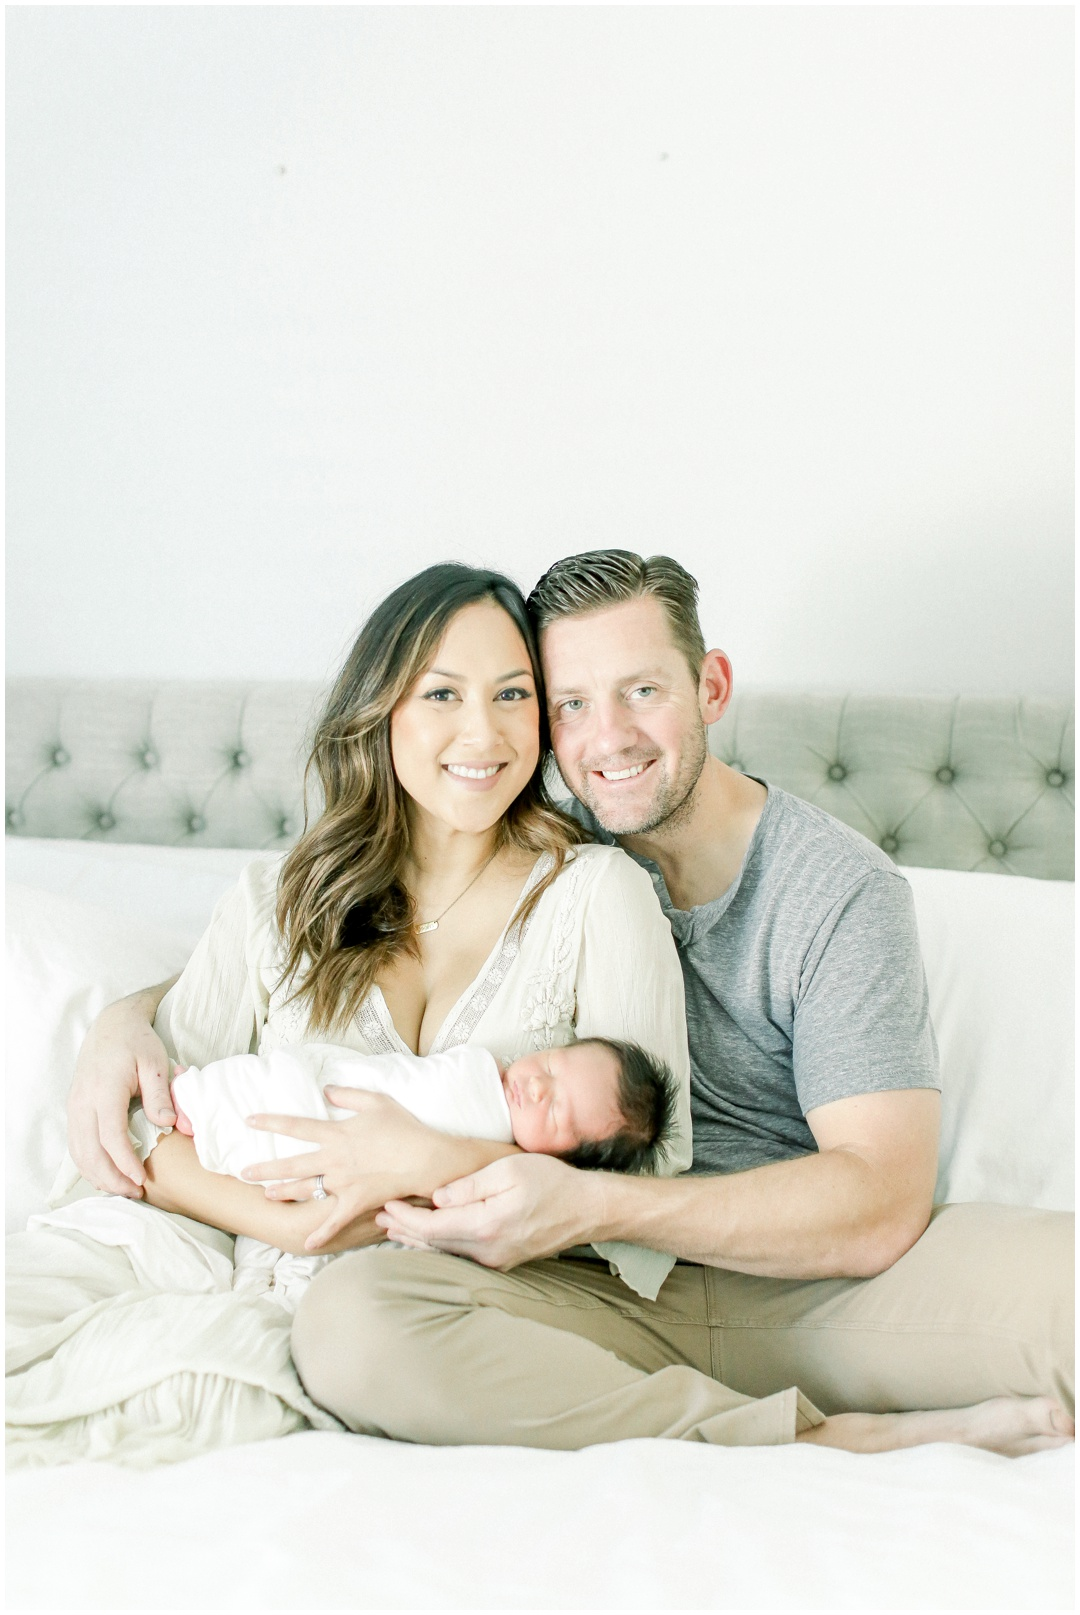 Newport_Beach_Newborn_Photographer_Newport_Beach_Maternity_Photographer_Orange_County_Family_Photographer_Cori_Kleckner_Photography_Huntington_Beach_Photographer__Corey_Knapp_Jessica_Knapp_Family_Photos__2774.jpg